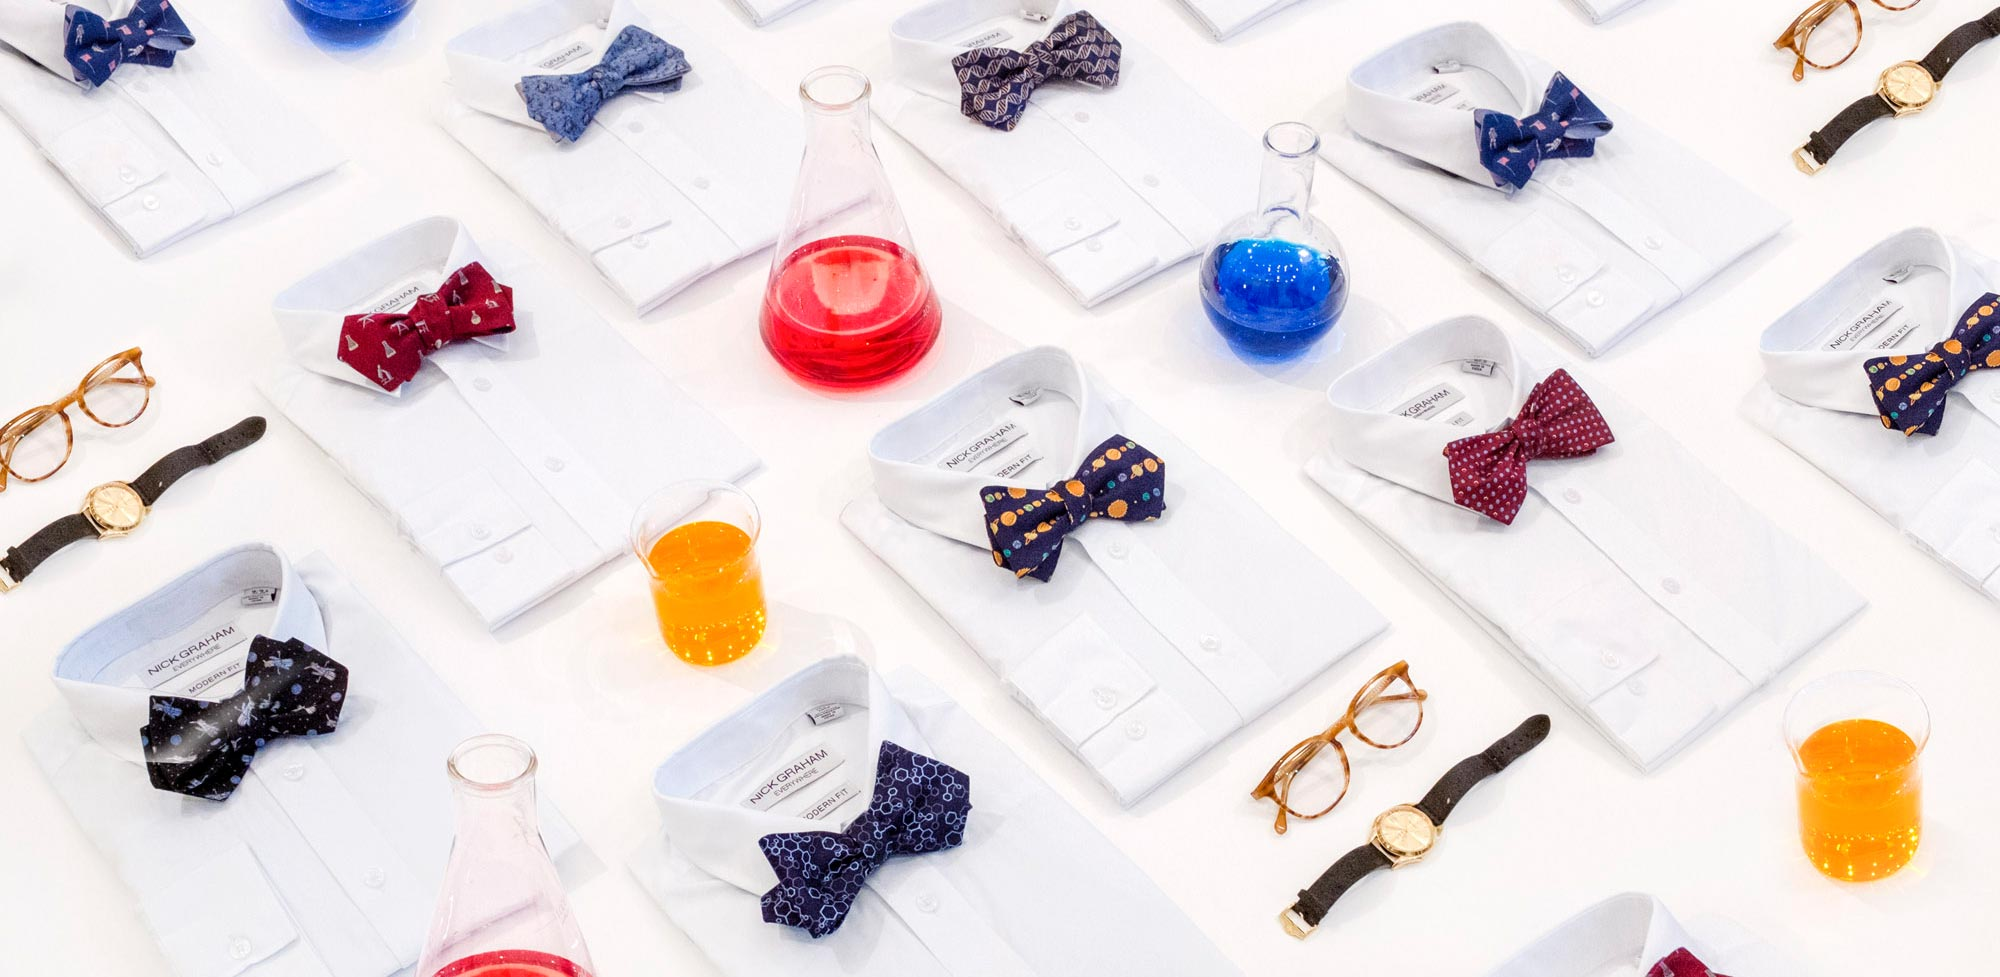 Bill Nye bow ties